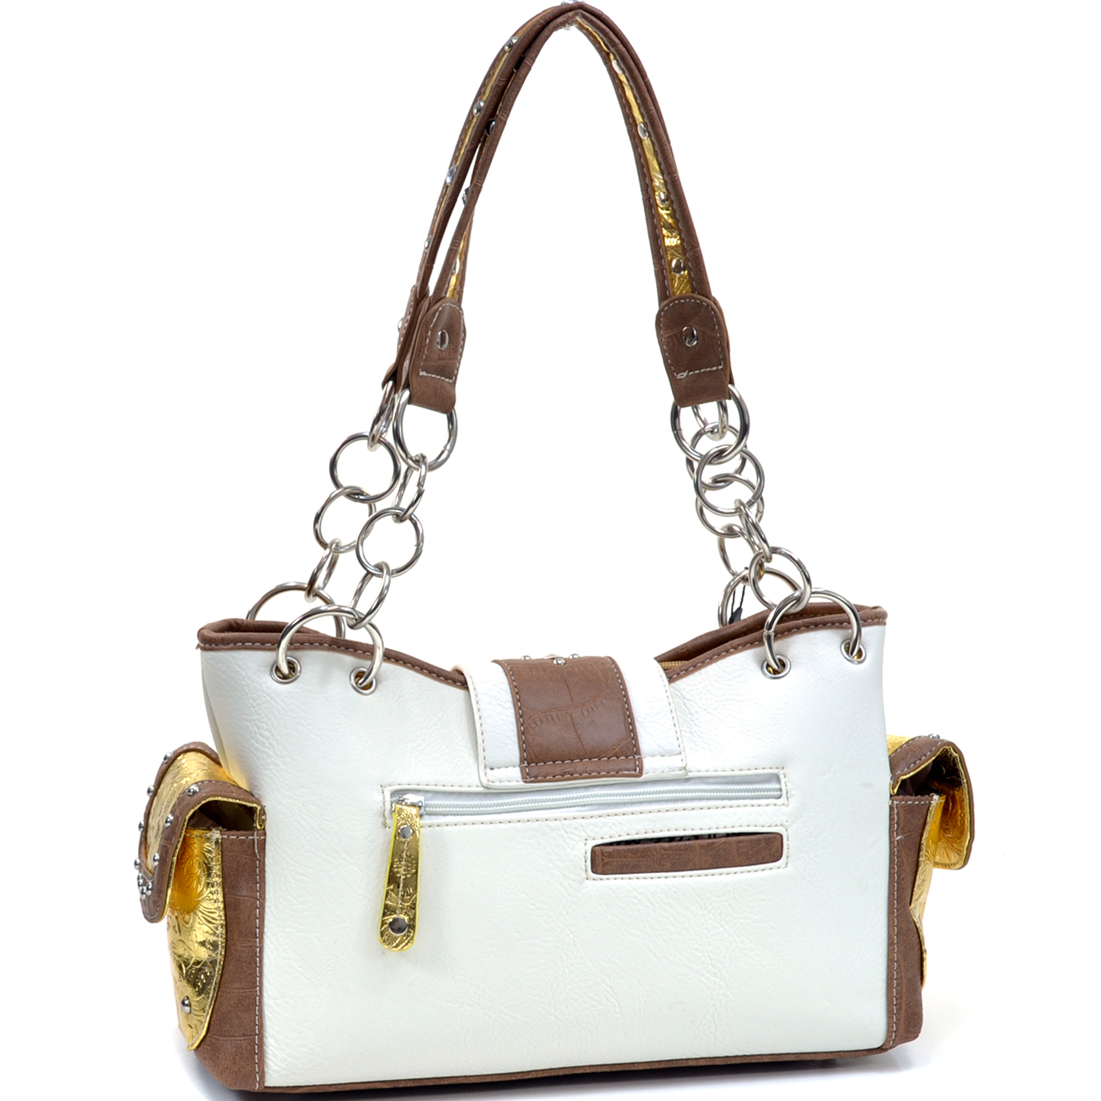 Sordid Gold Shoulder Bag